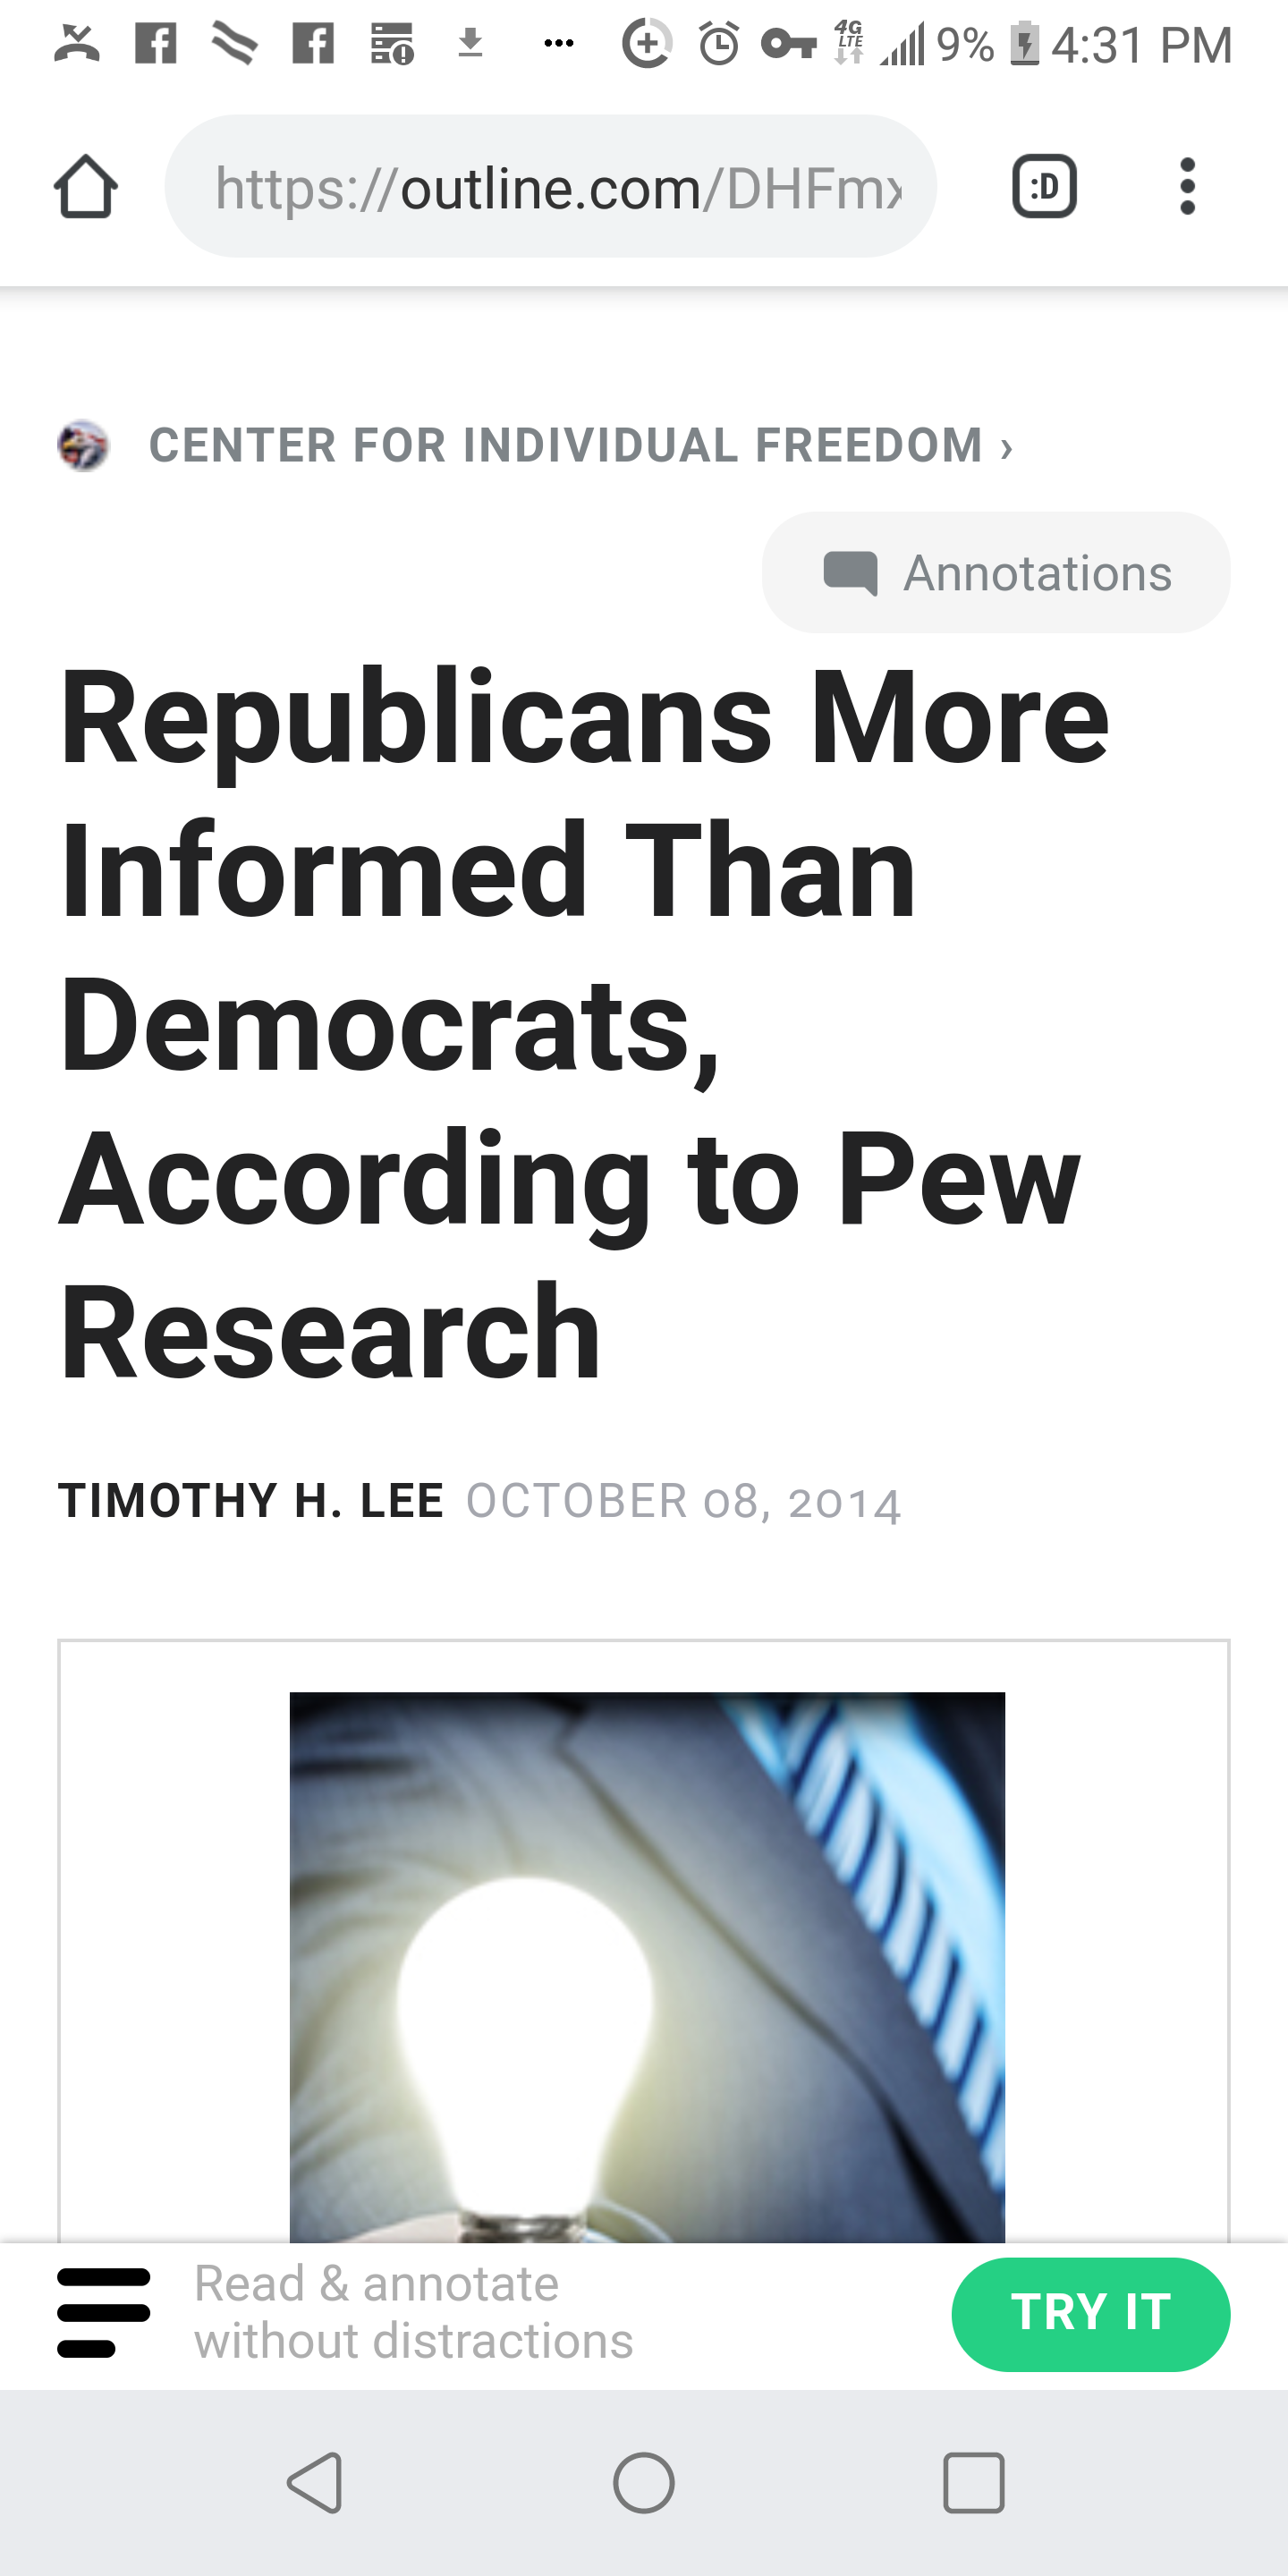 TERRIFYING: Study finds liberals are basically unreachable.